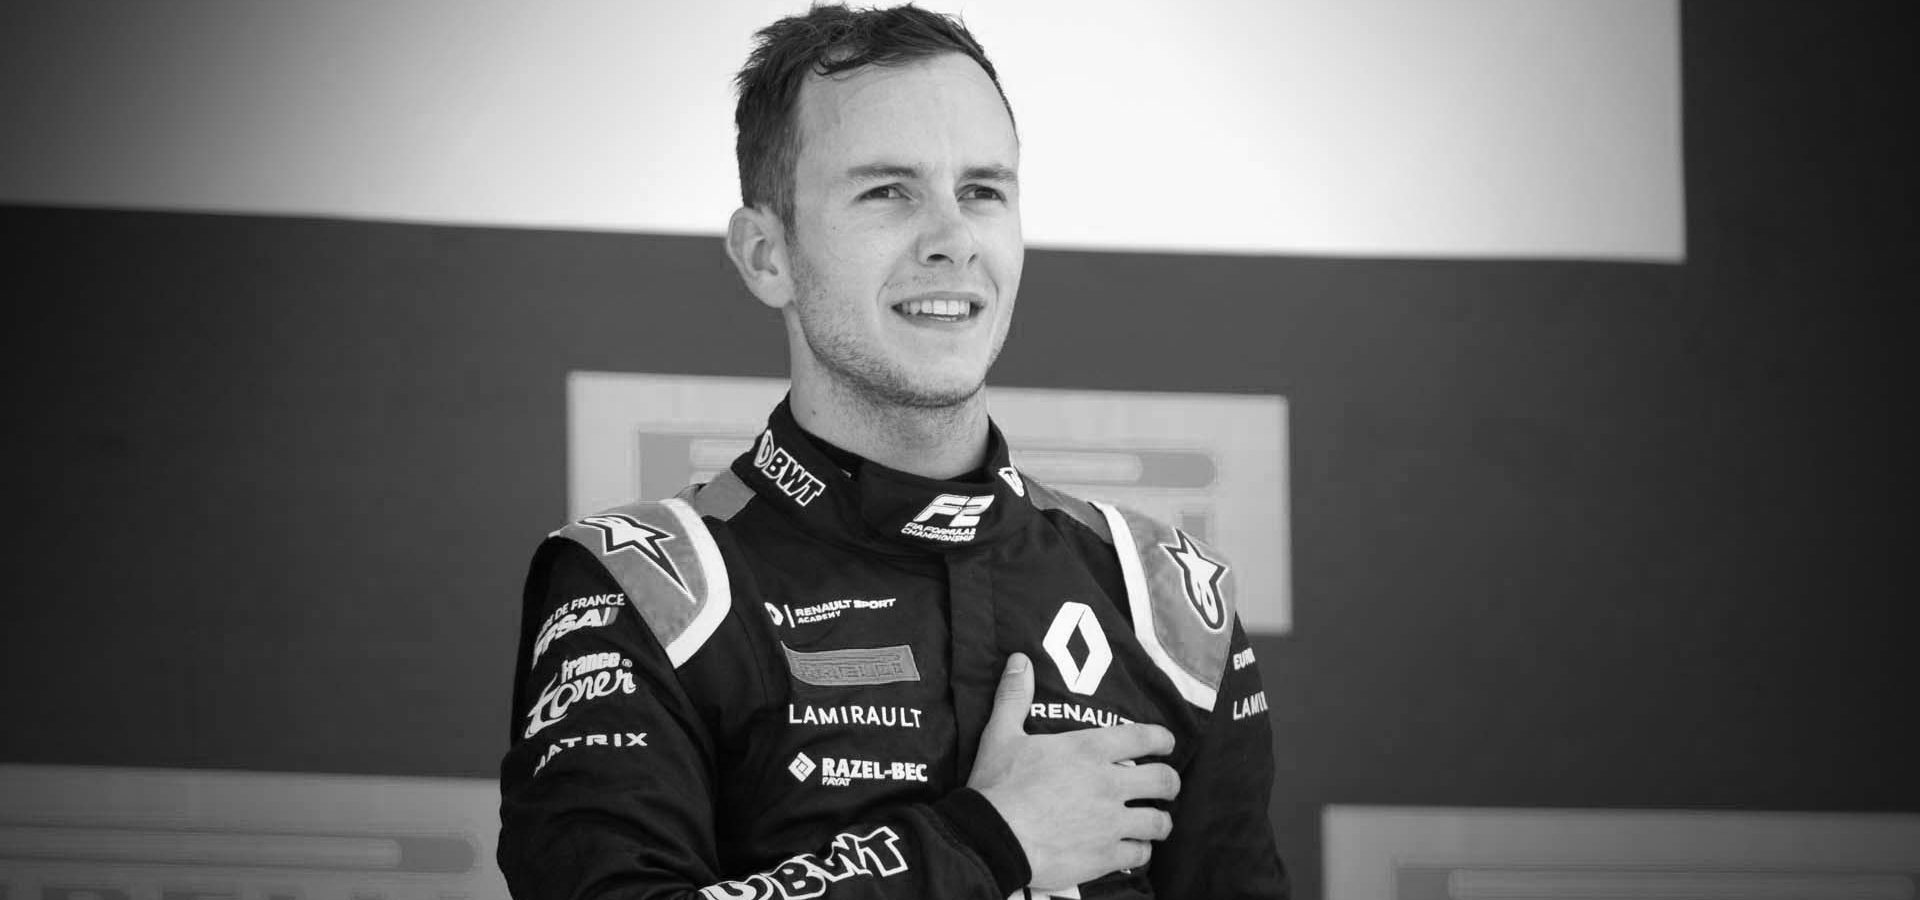 CIRCUIT PAUL RICARD, FRANCE - JUNE 23: Anthoine Hubert (FRA, BWT ARDEN) during the Paul Ricard at Circuit Paul Ricard on June 23, 2019 in Circuit Paul Ricard, France. (Photo by Joe Portlock / LAT Images / FIA F2 Championship)